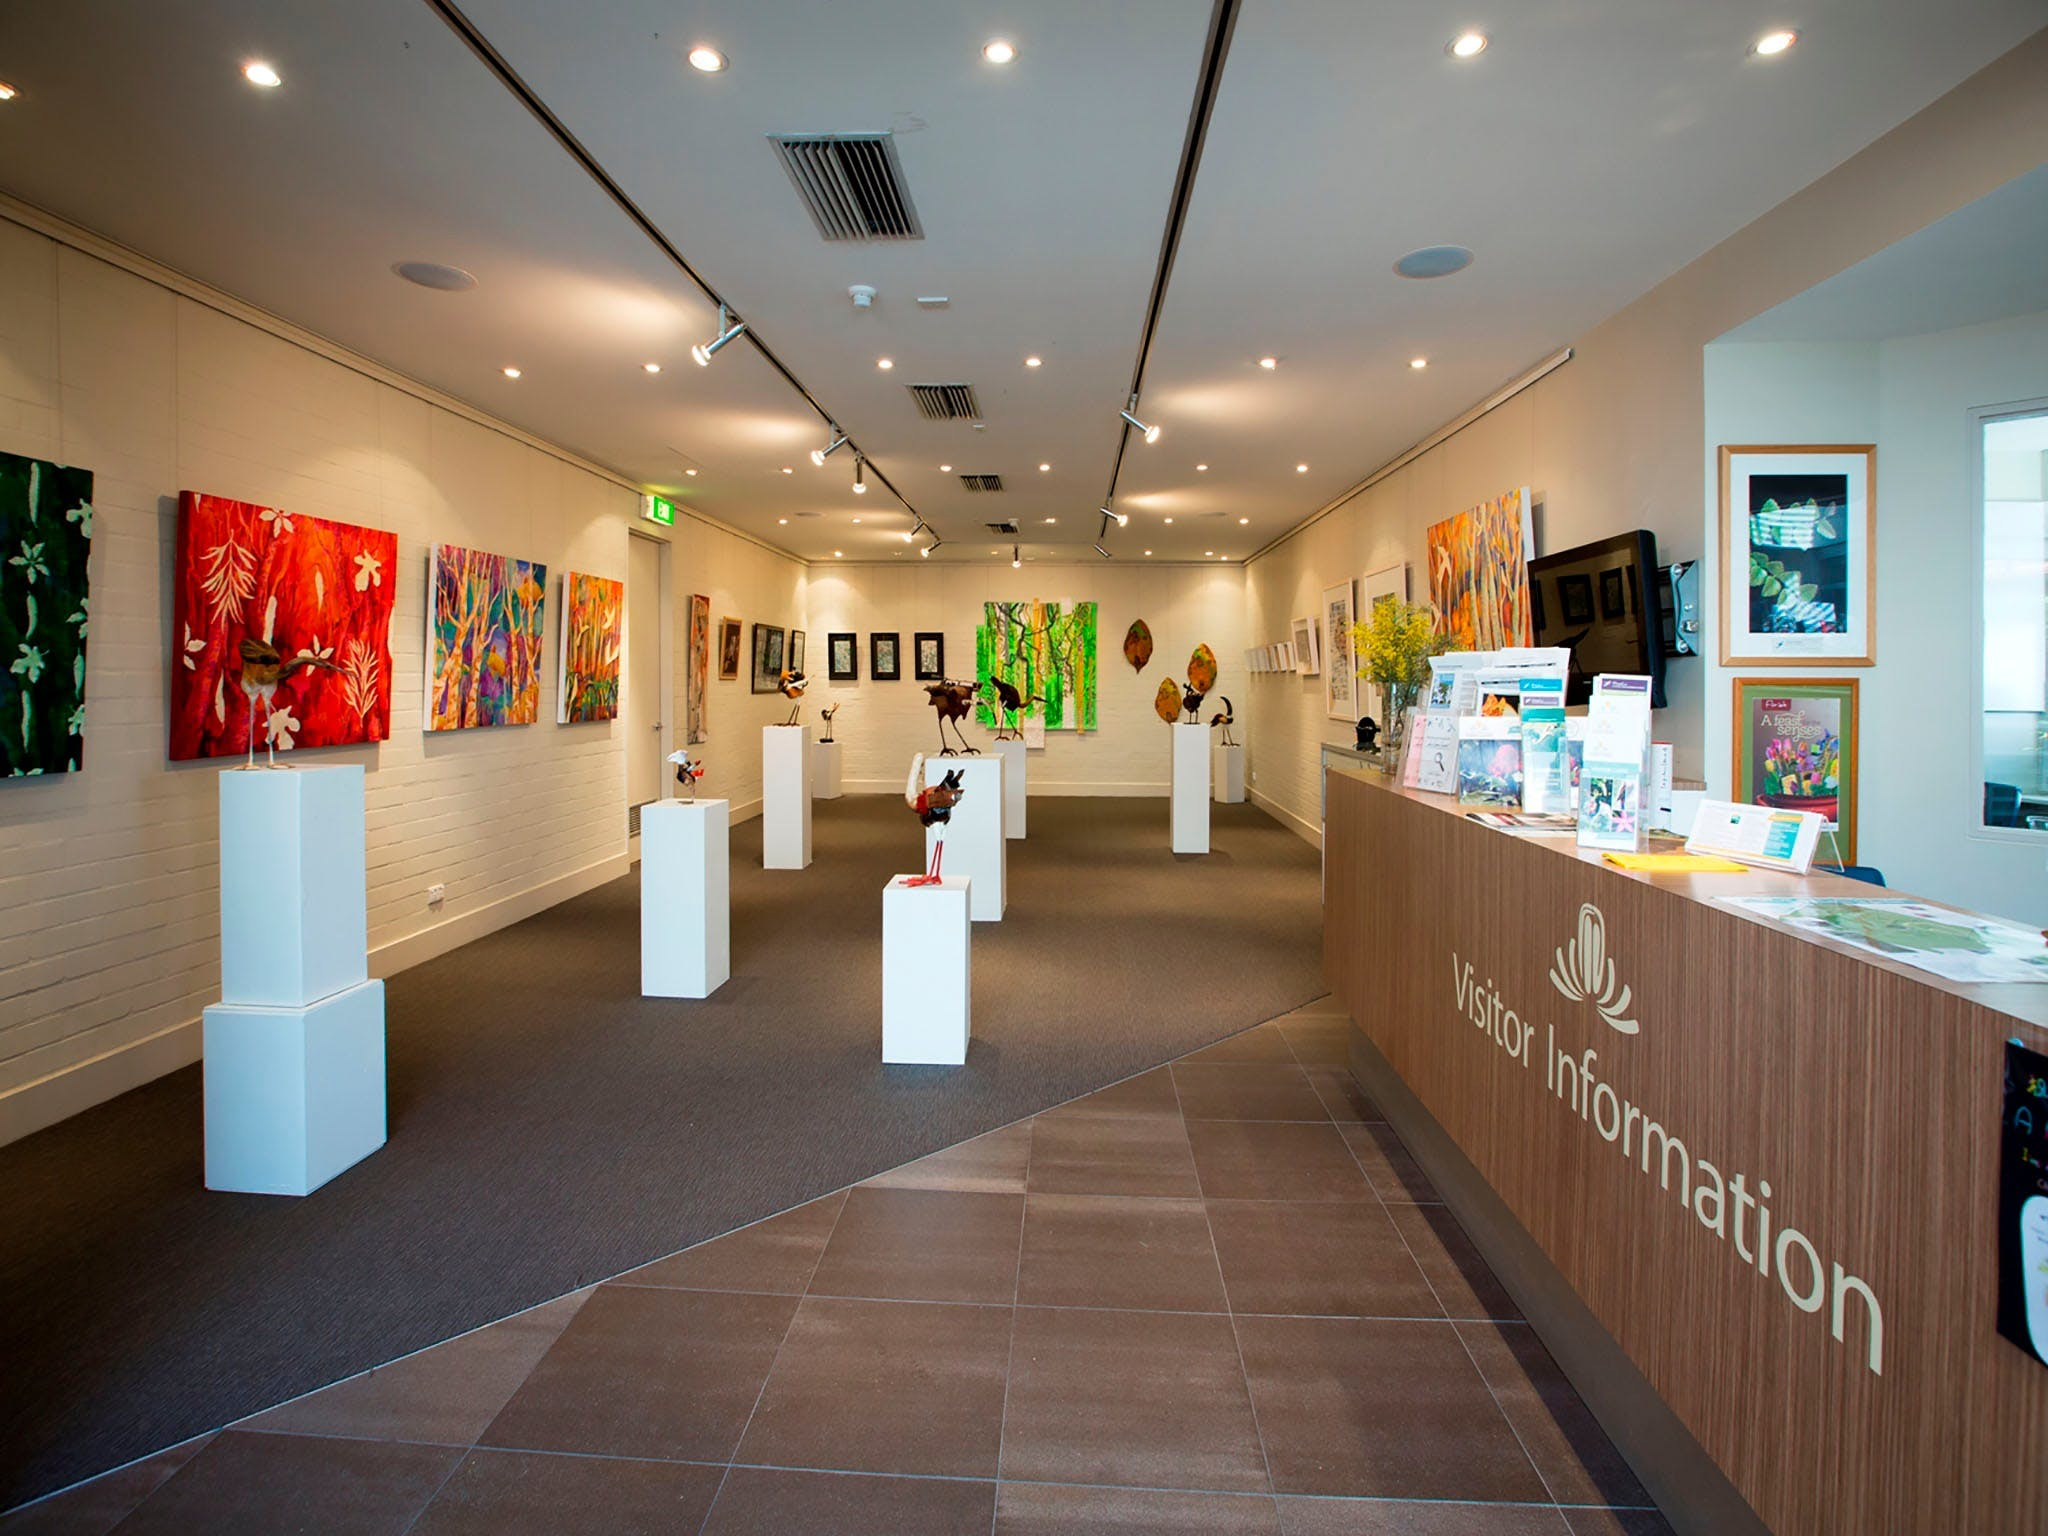 Australian National Botanic Gardens Visitor Centre Gallery - Accommodation Gold Coast